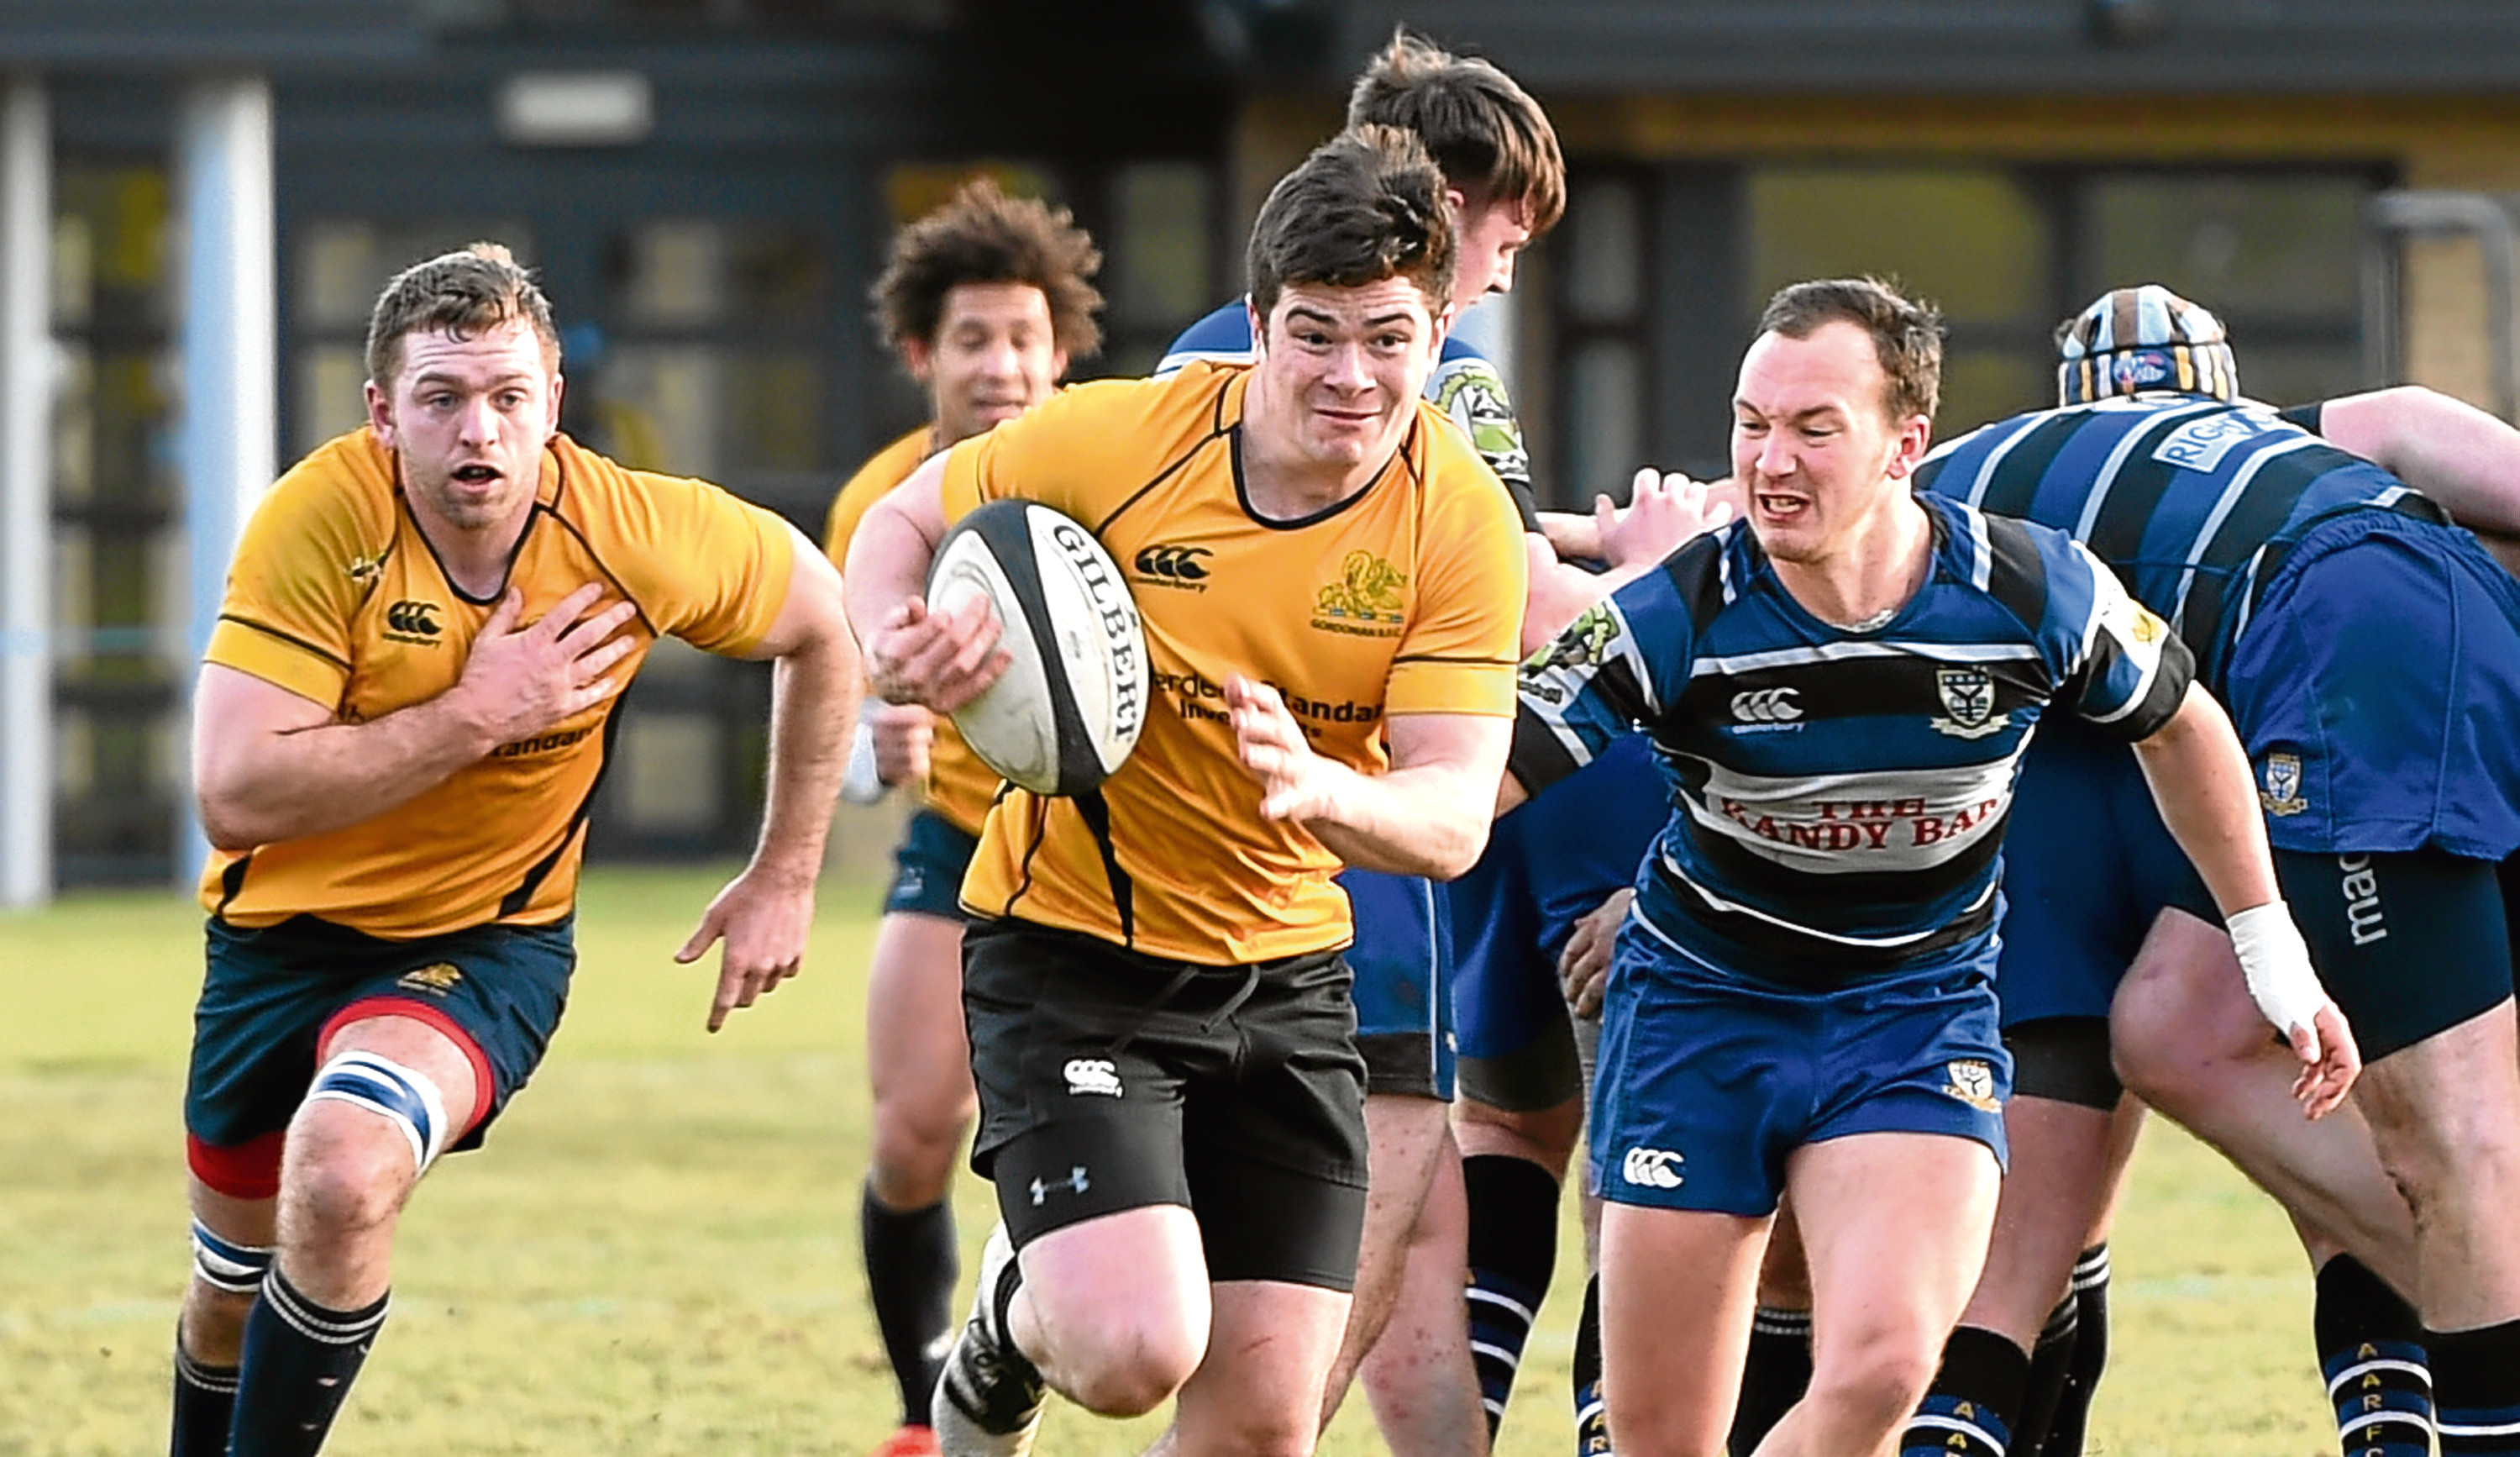 Gordonians RFC v Dalziel RFC at Countesswells Aberdeen. In the picture is Seb Davies racing forward.  Picture by Jim Irvine